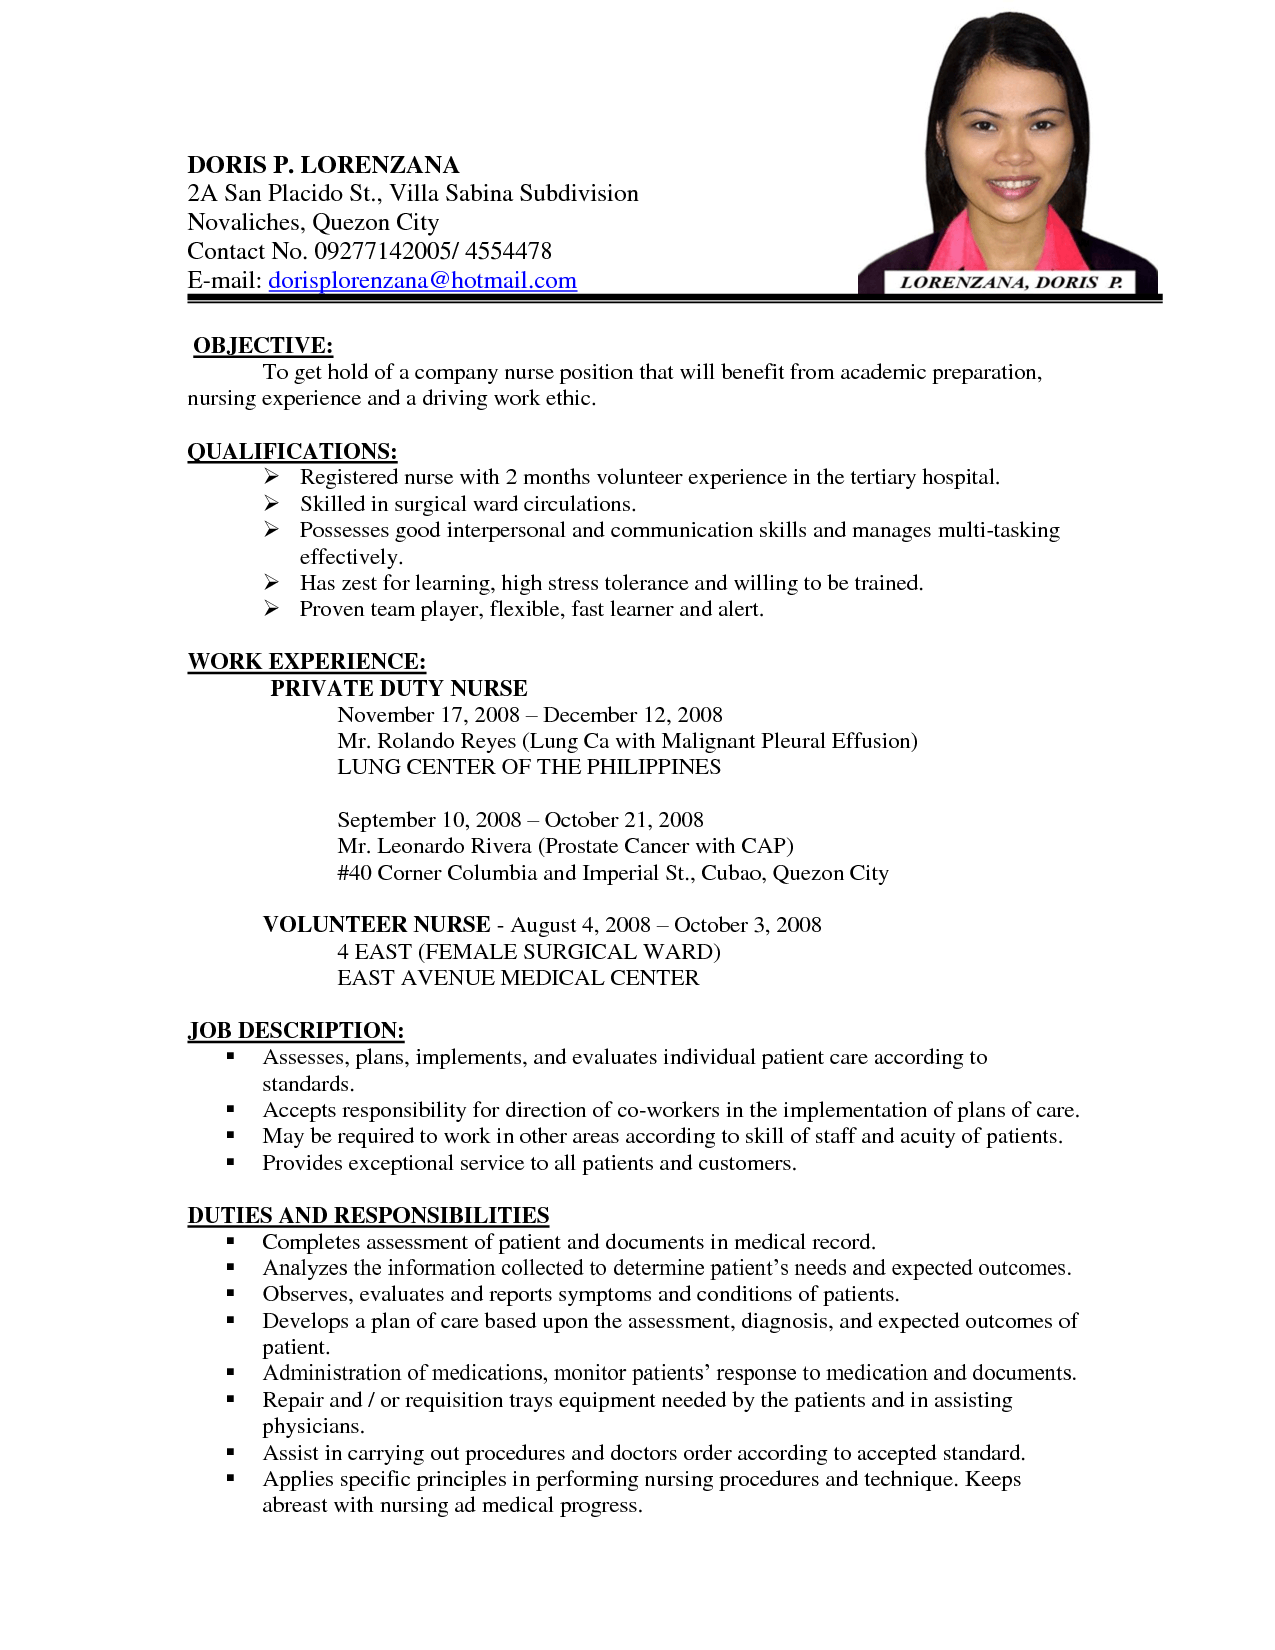 Template For Nursing Resume Image Result For Curriculum Vitae Format For A Nurse  Card